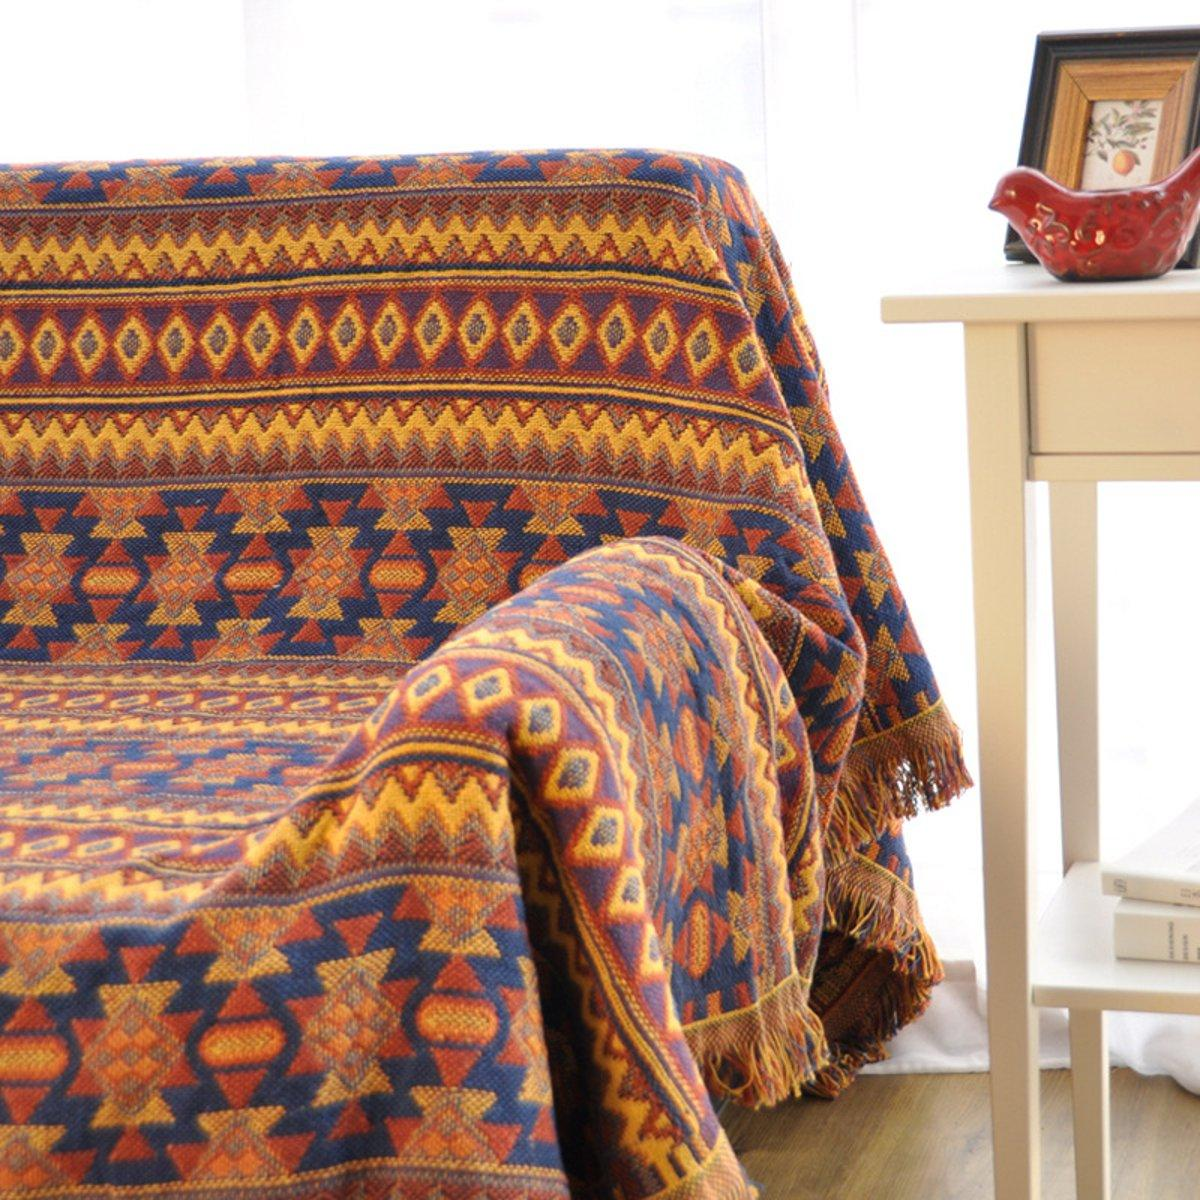 Cotton Knitted Blankets Throw Tribal Bohemian Ethnic Sofa Bedding Home Decor - 4